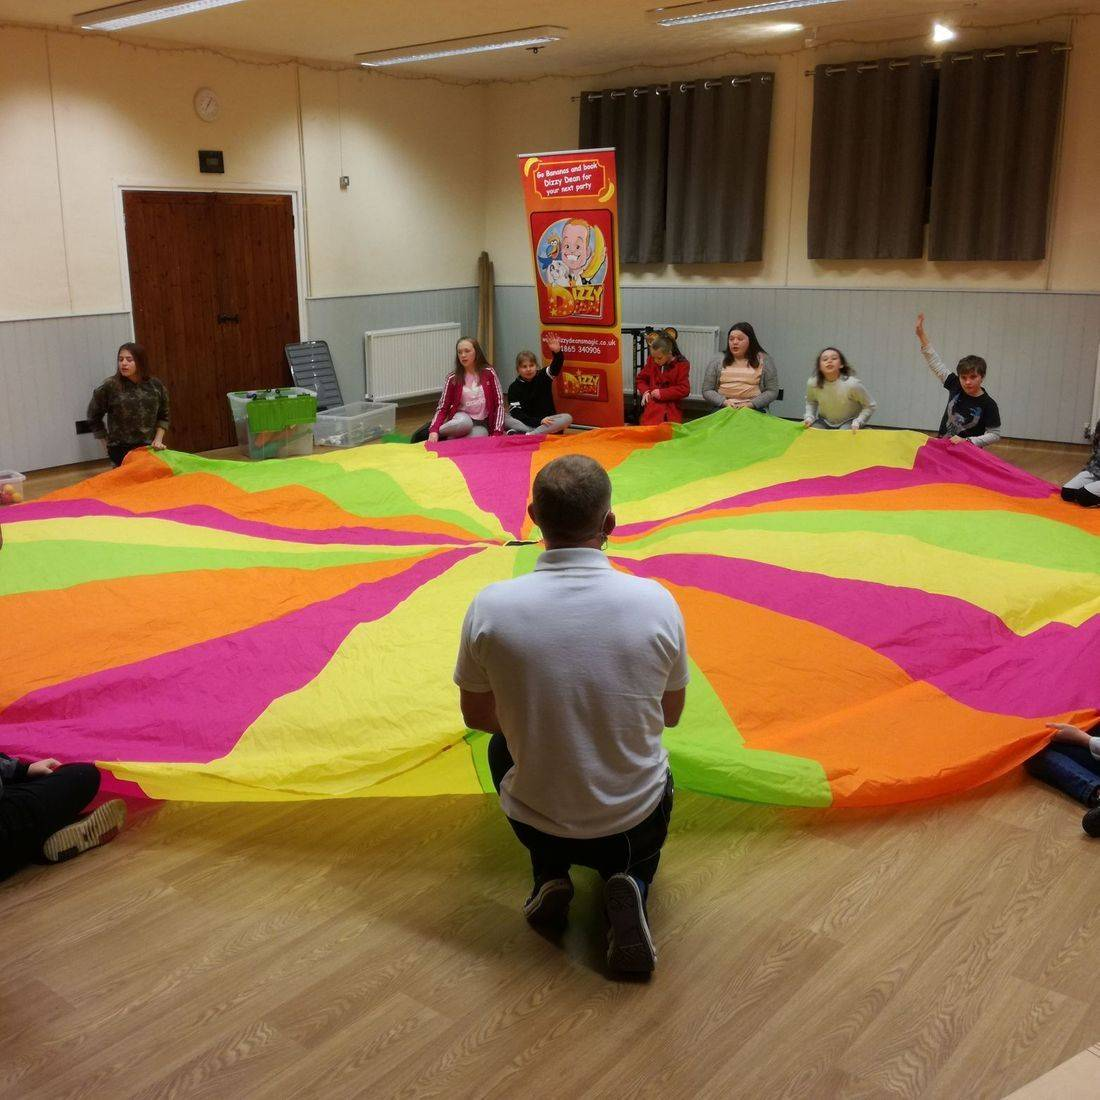 Parachute Games at Children's Magic Show